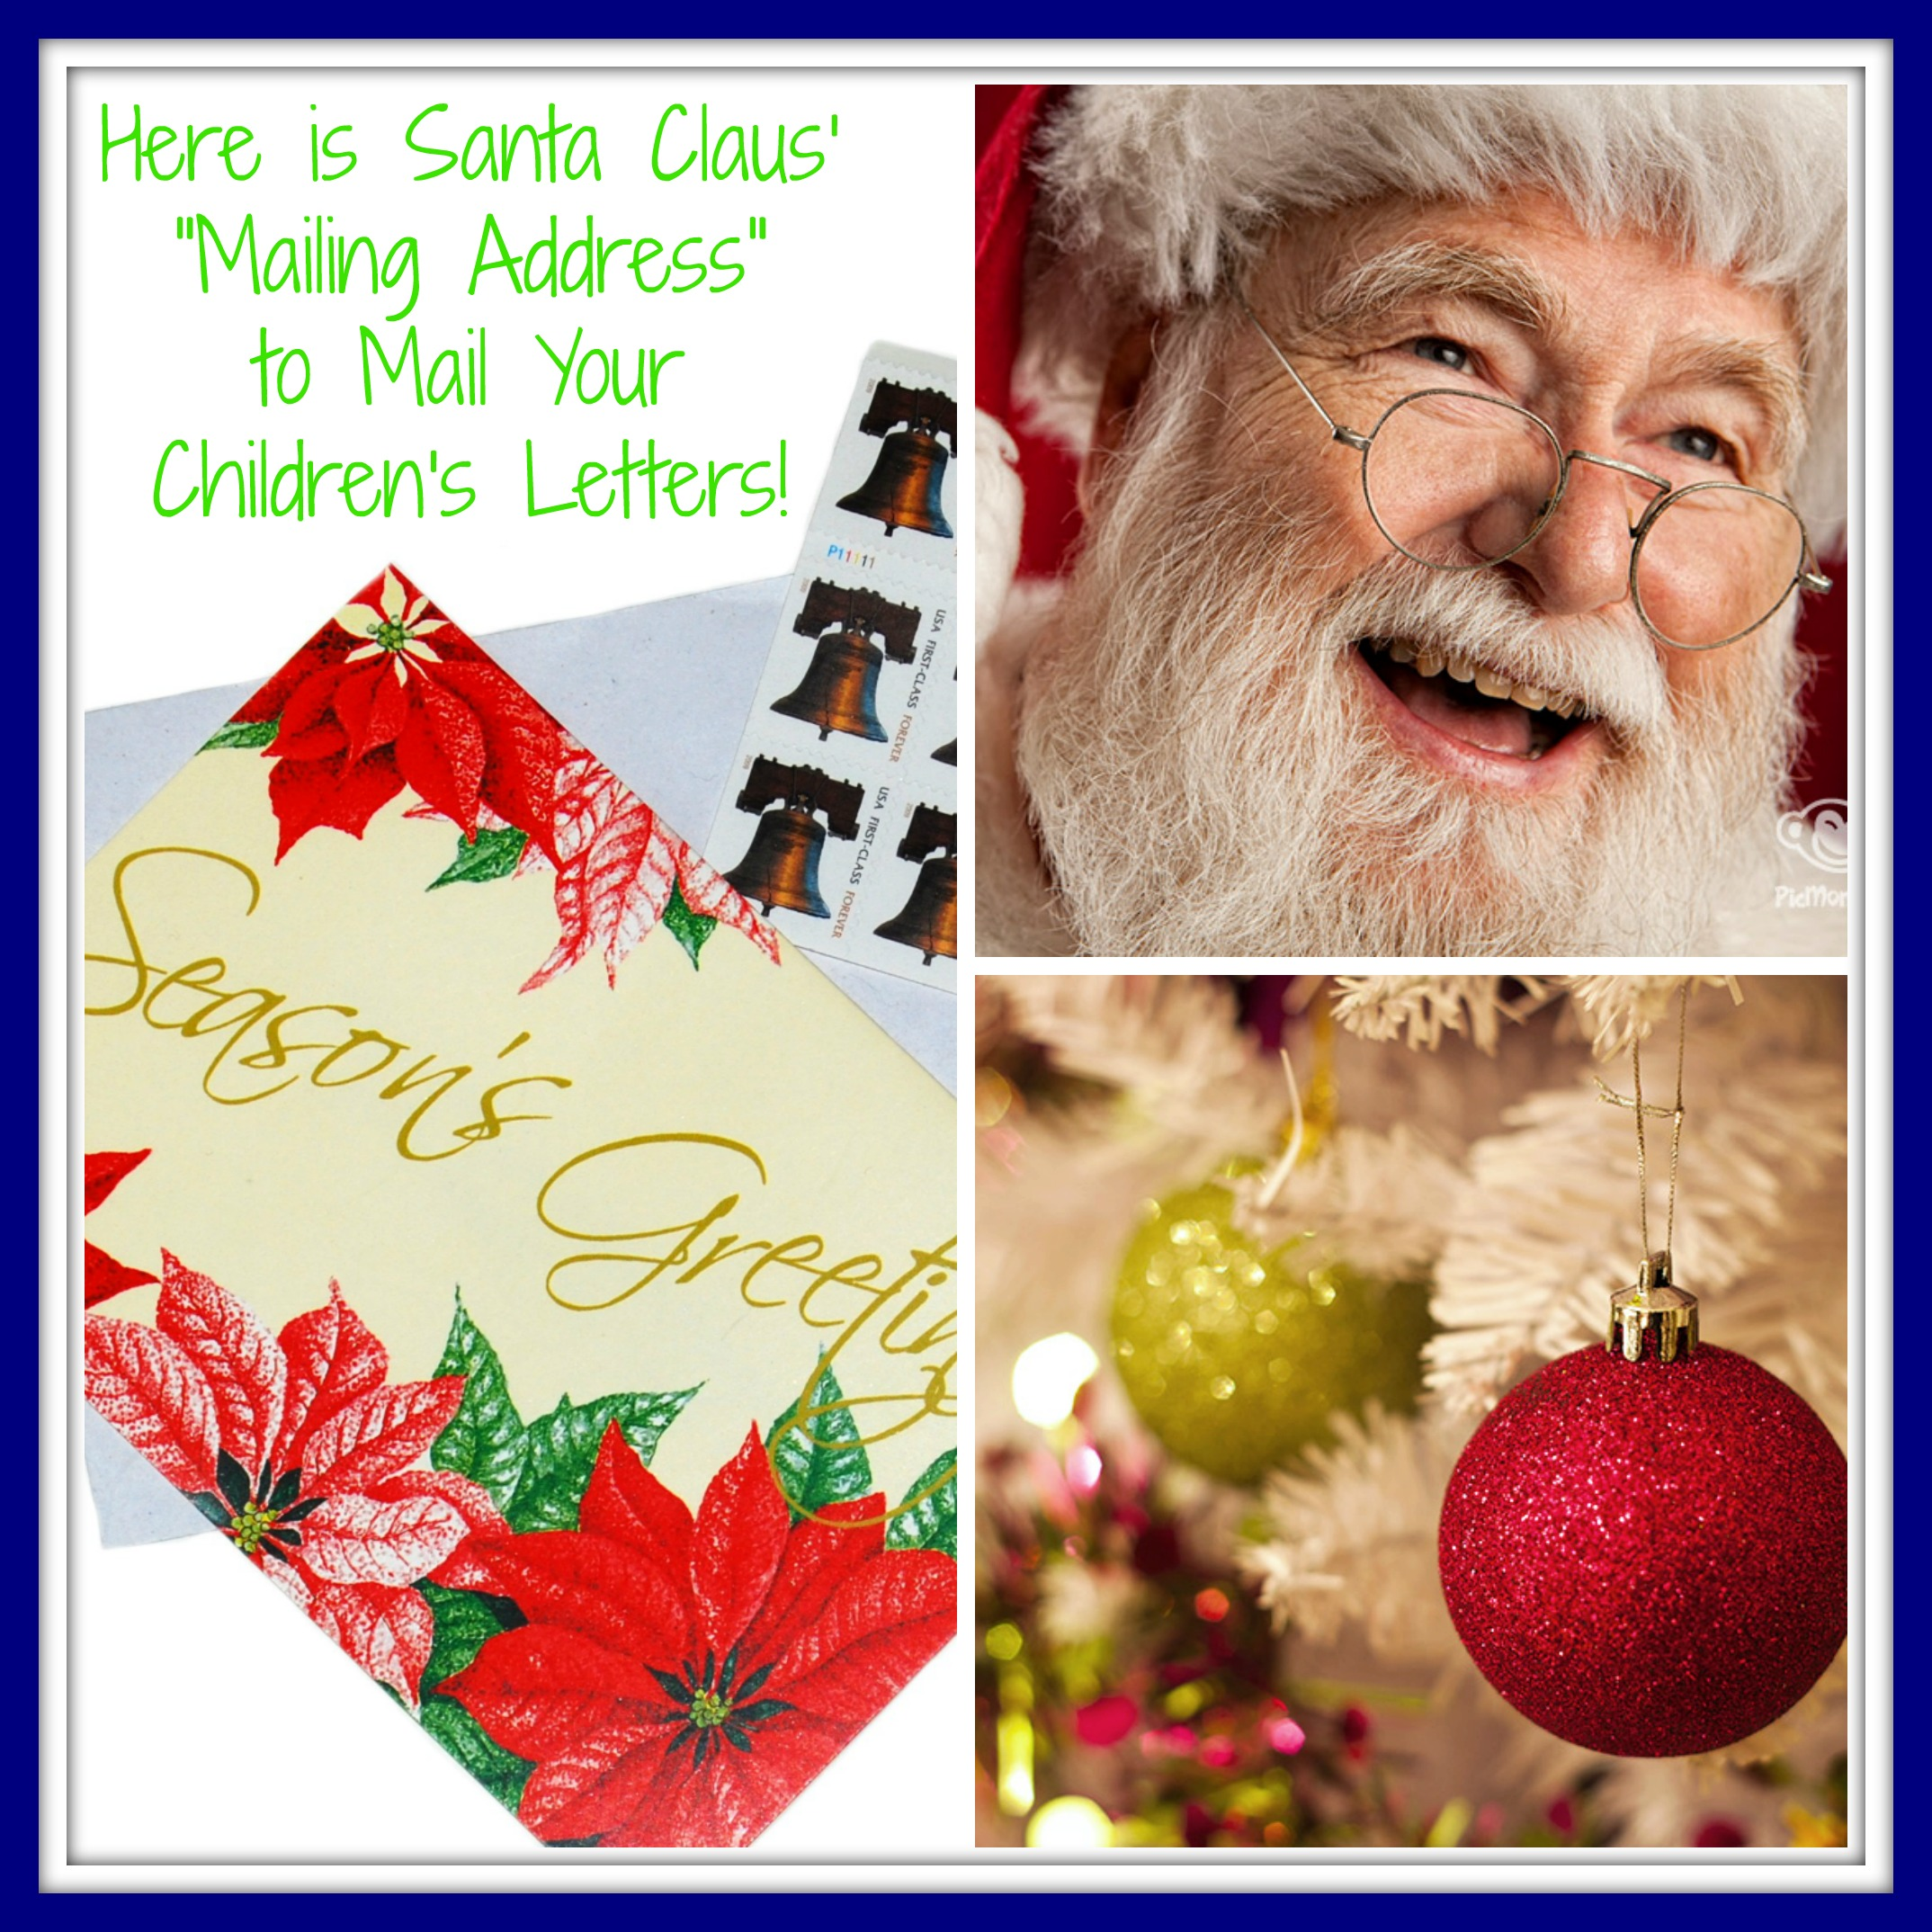 North pole mailing address i need a place to send santa his letter